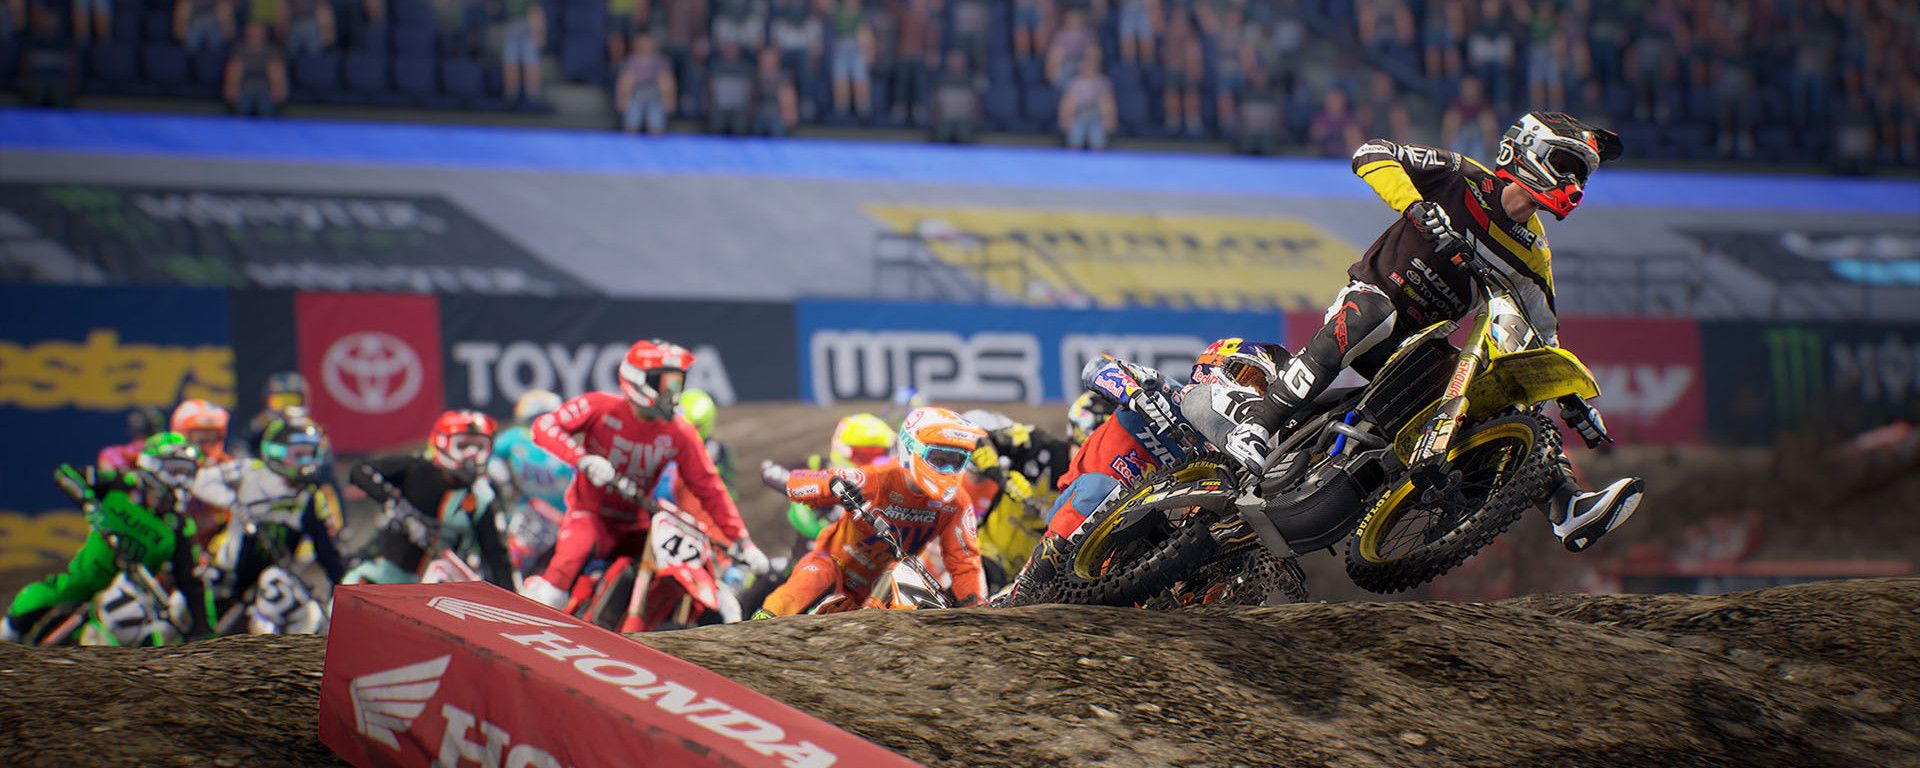 Momenti di gara concitati in Monster Energy Supercross - The Official Videogame 3